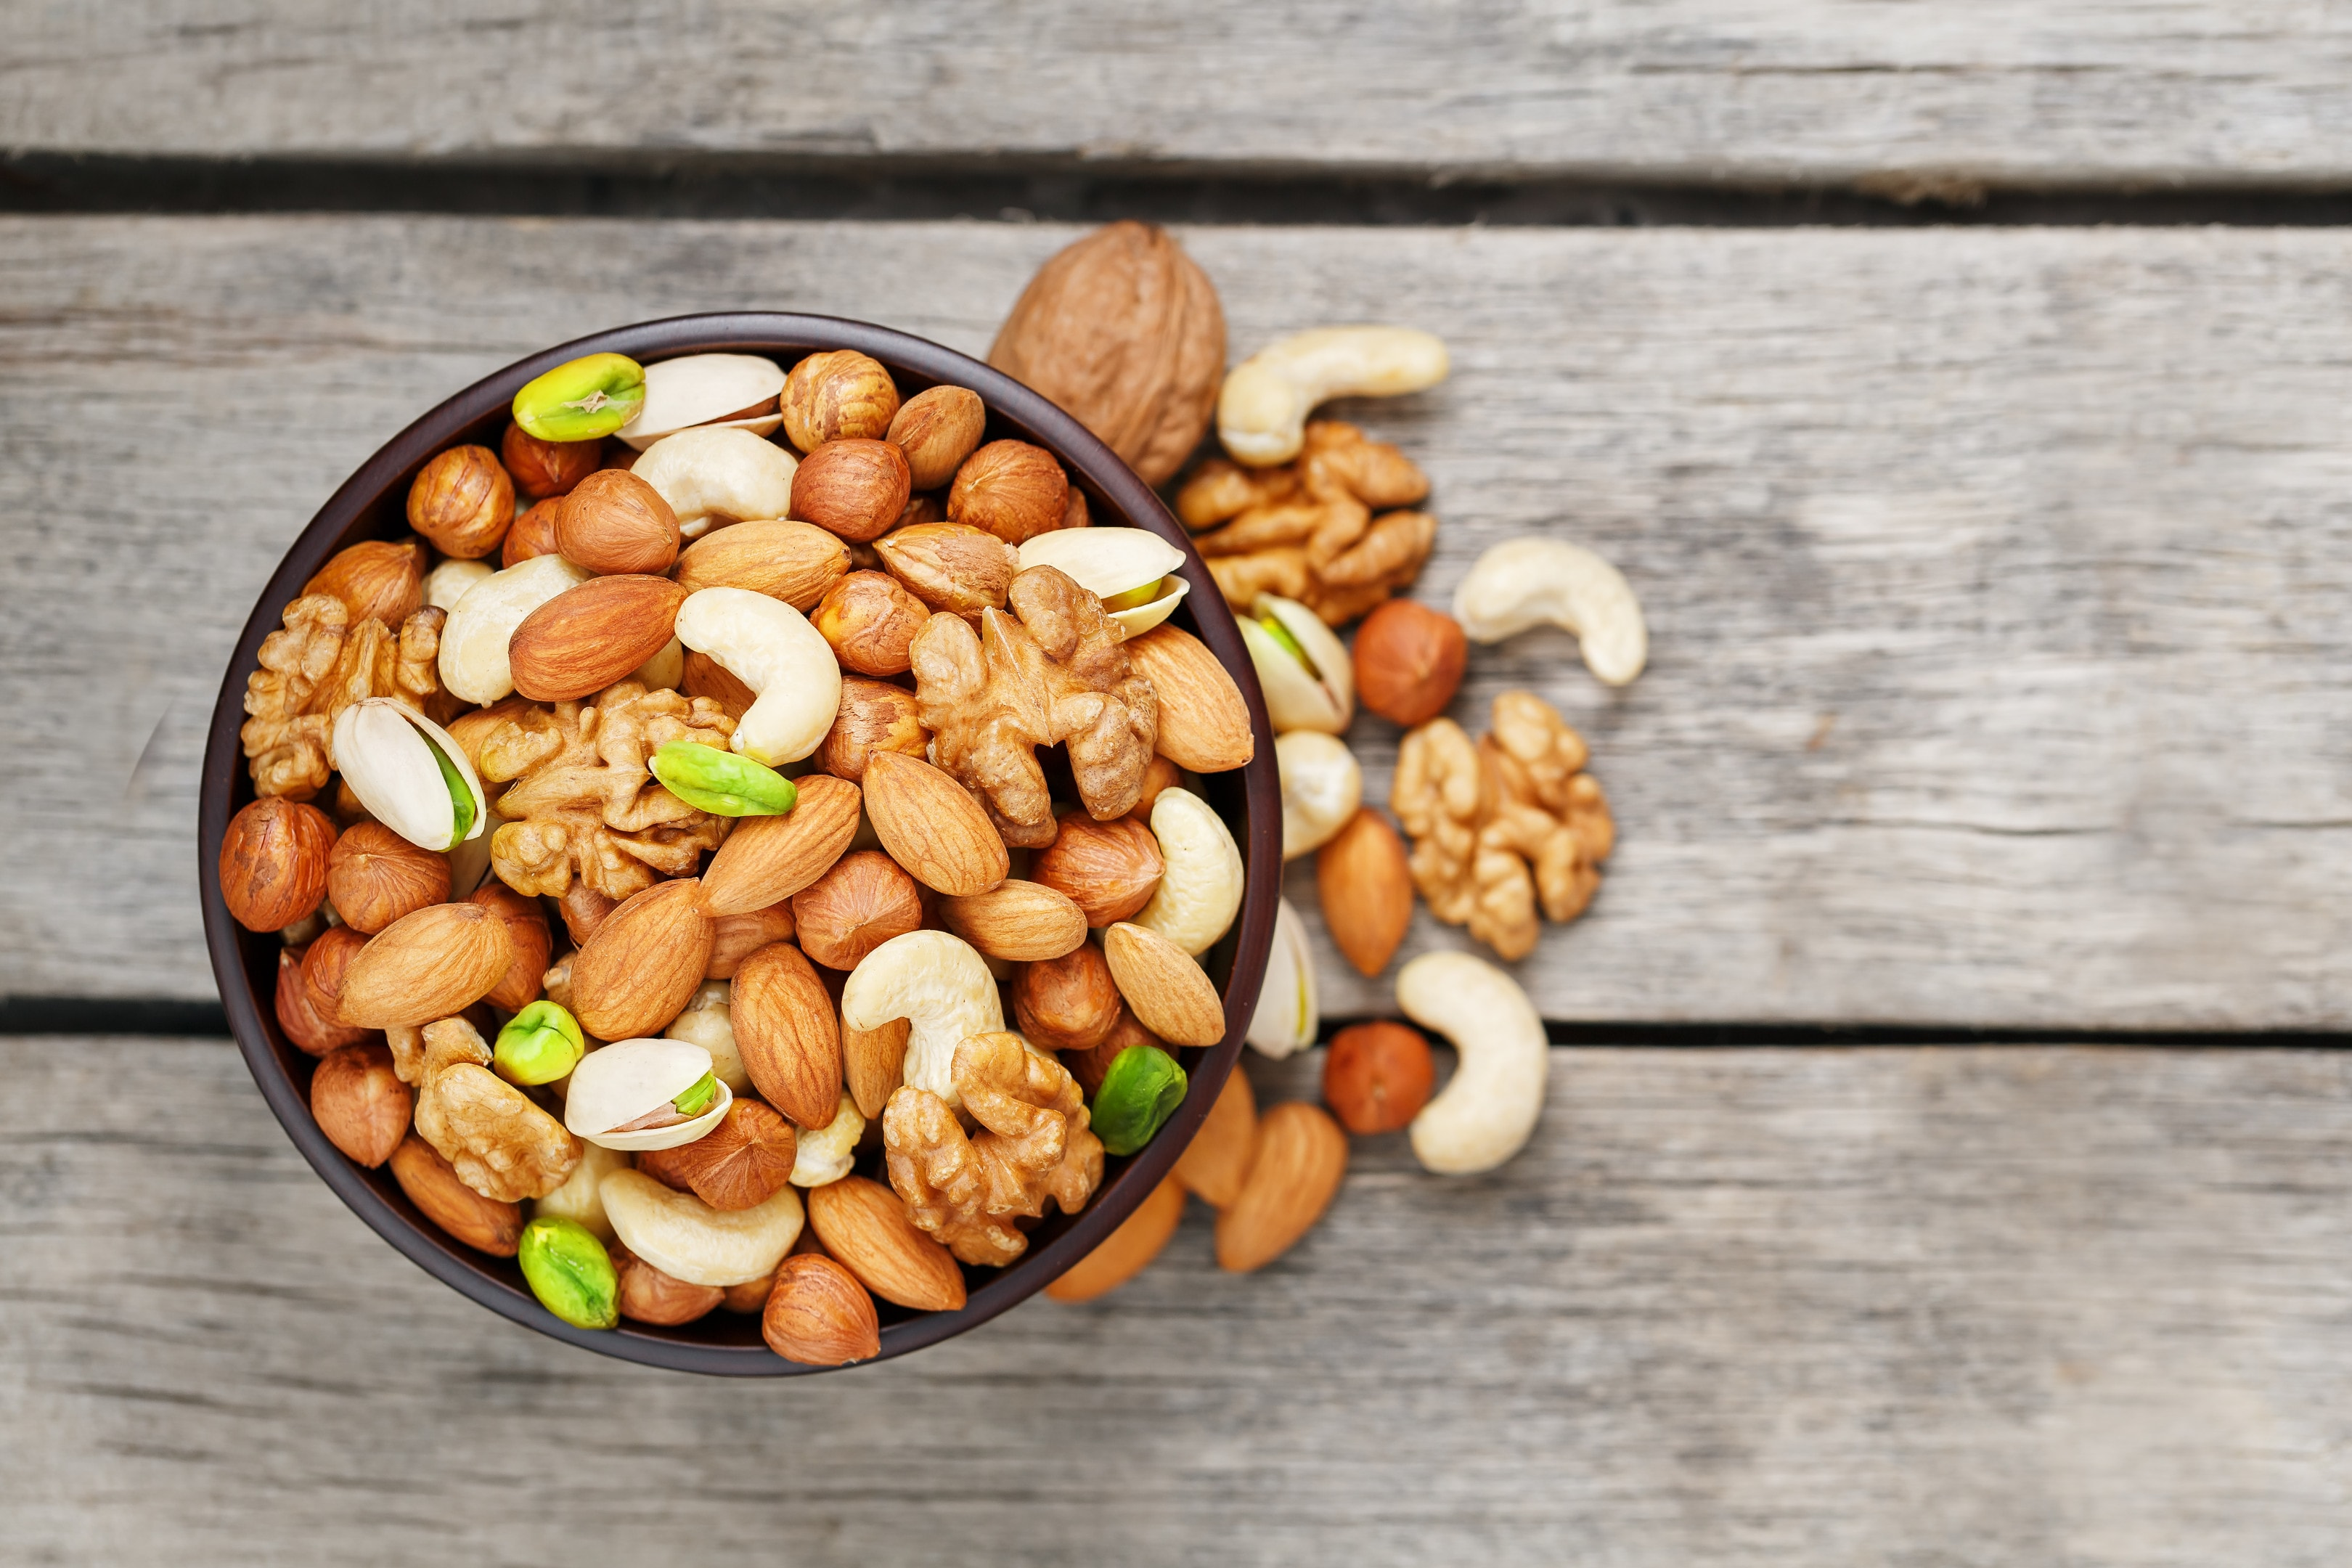 Mixed nuts walnut pistachios almonds hazelnuts cashews in wooden bowl